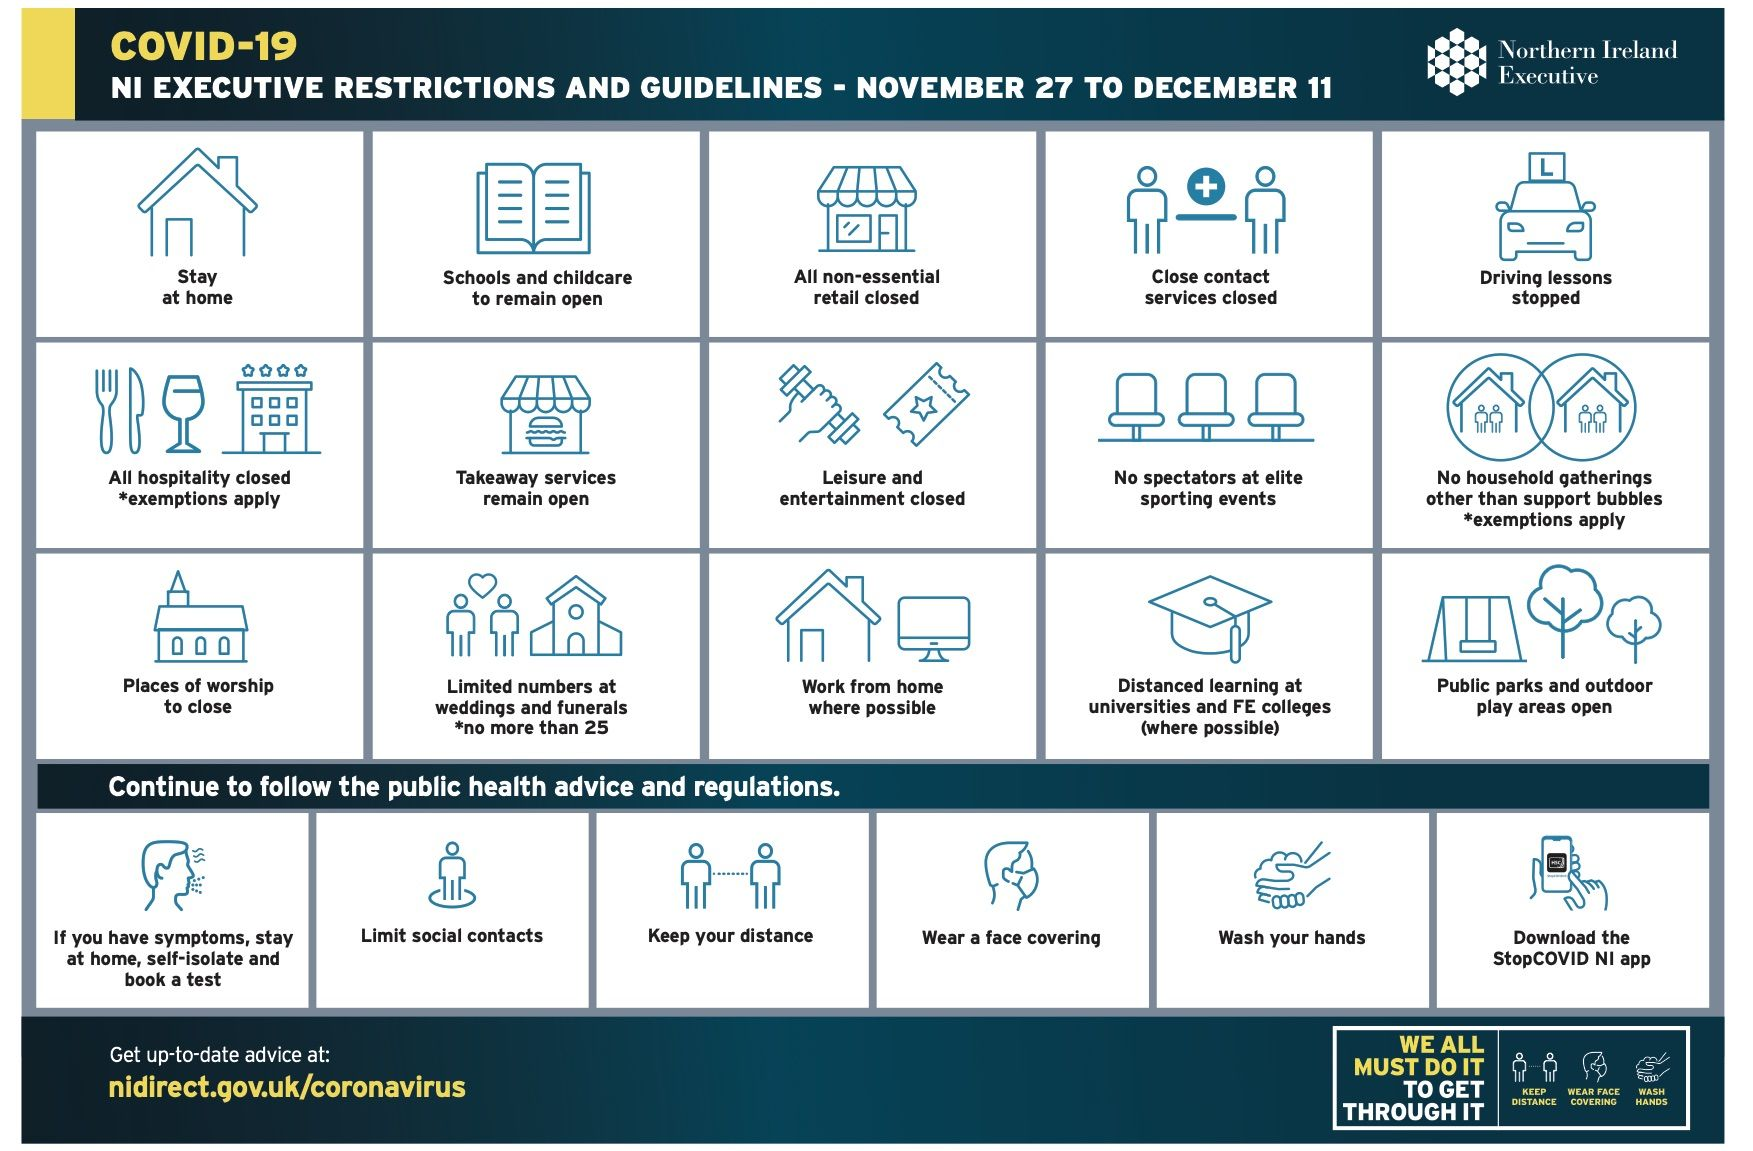 NEW MEASURES: The new restrictions will cover two weeks from November 27 until December 11.